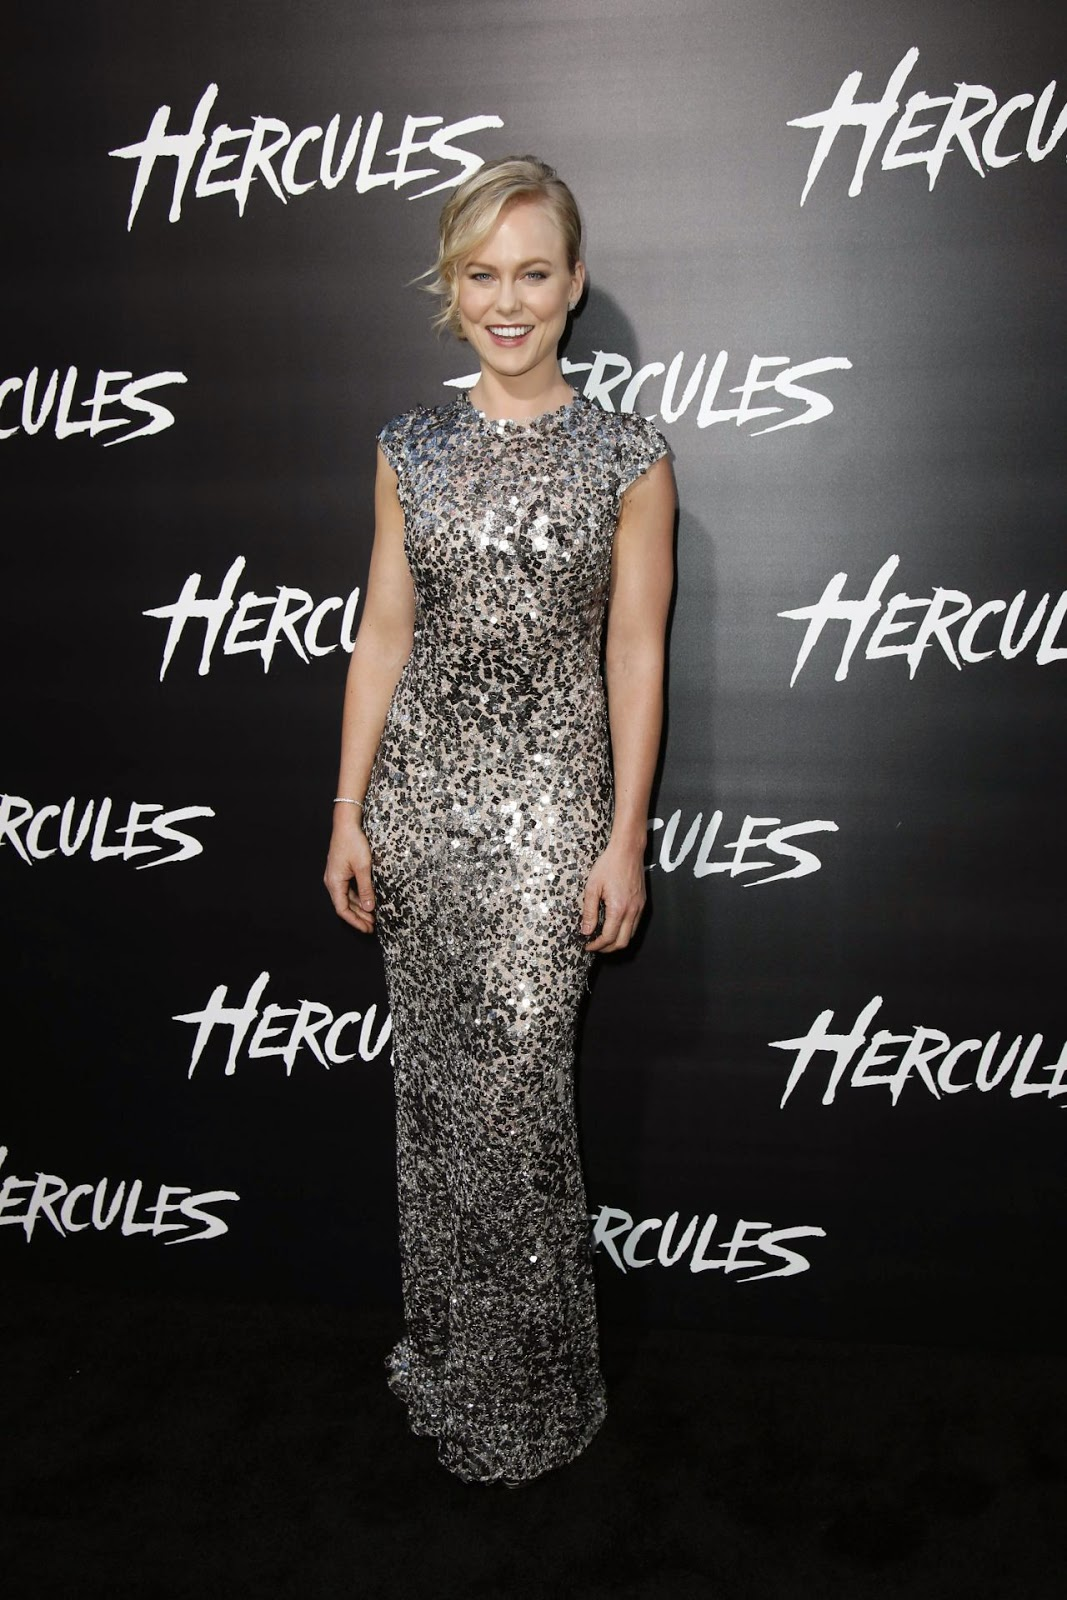 Ingrid Bolso Berdal in a sequinned gown at the 'Hercules' LA premiere